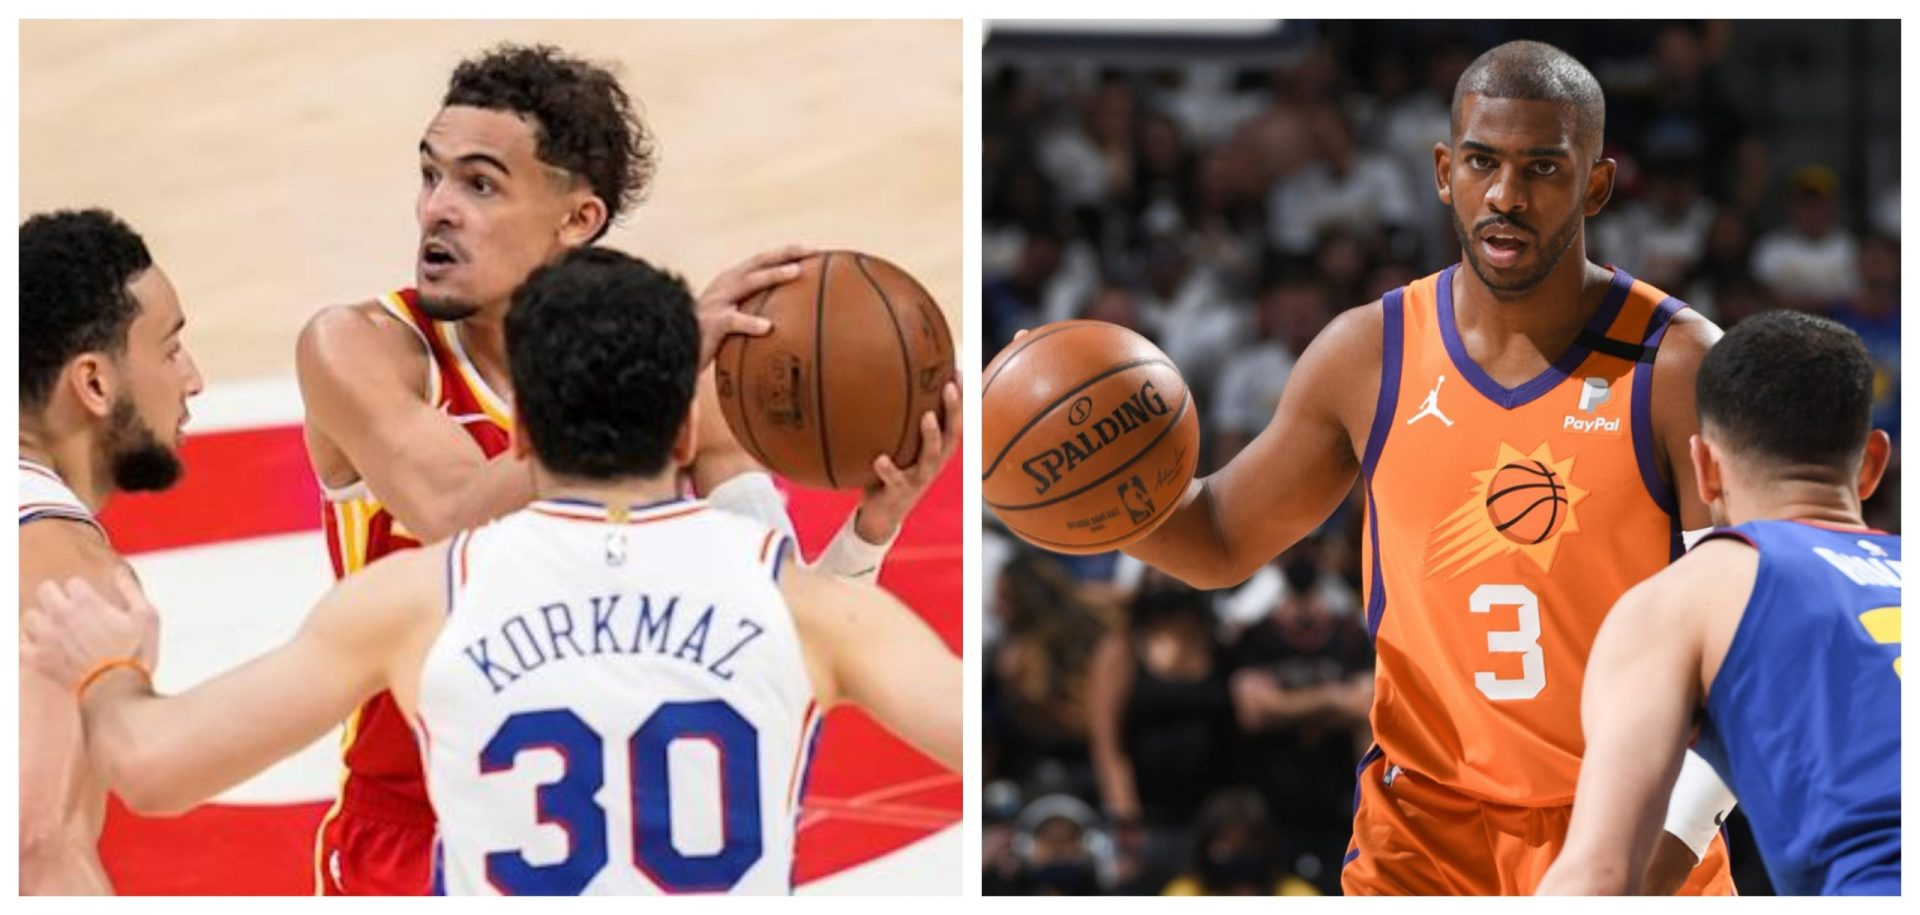 NBA Playoffs Day 21 Review: 76ers win two in a row; Suns take a commanding 3-0 lead over Nuggets - THE SPORTS ROOM